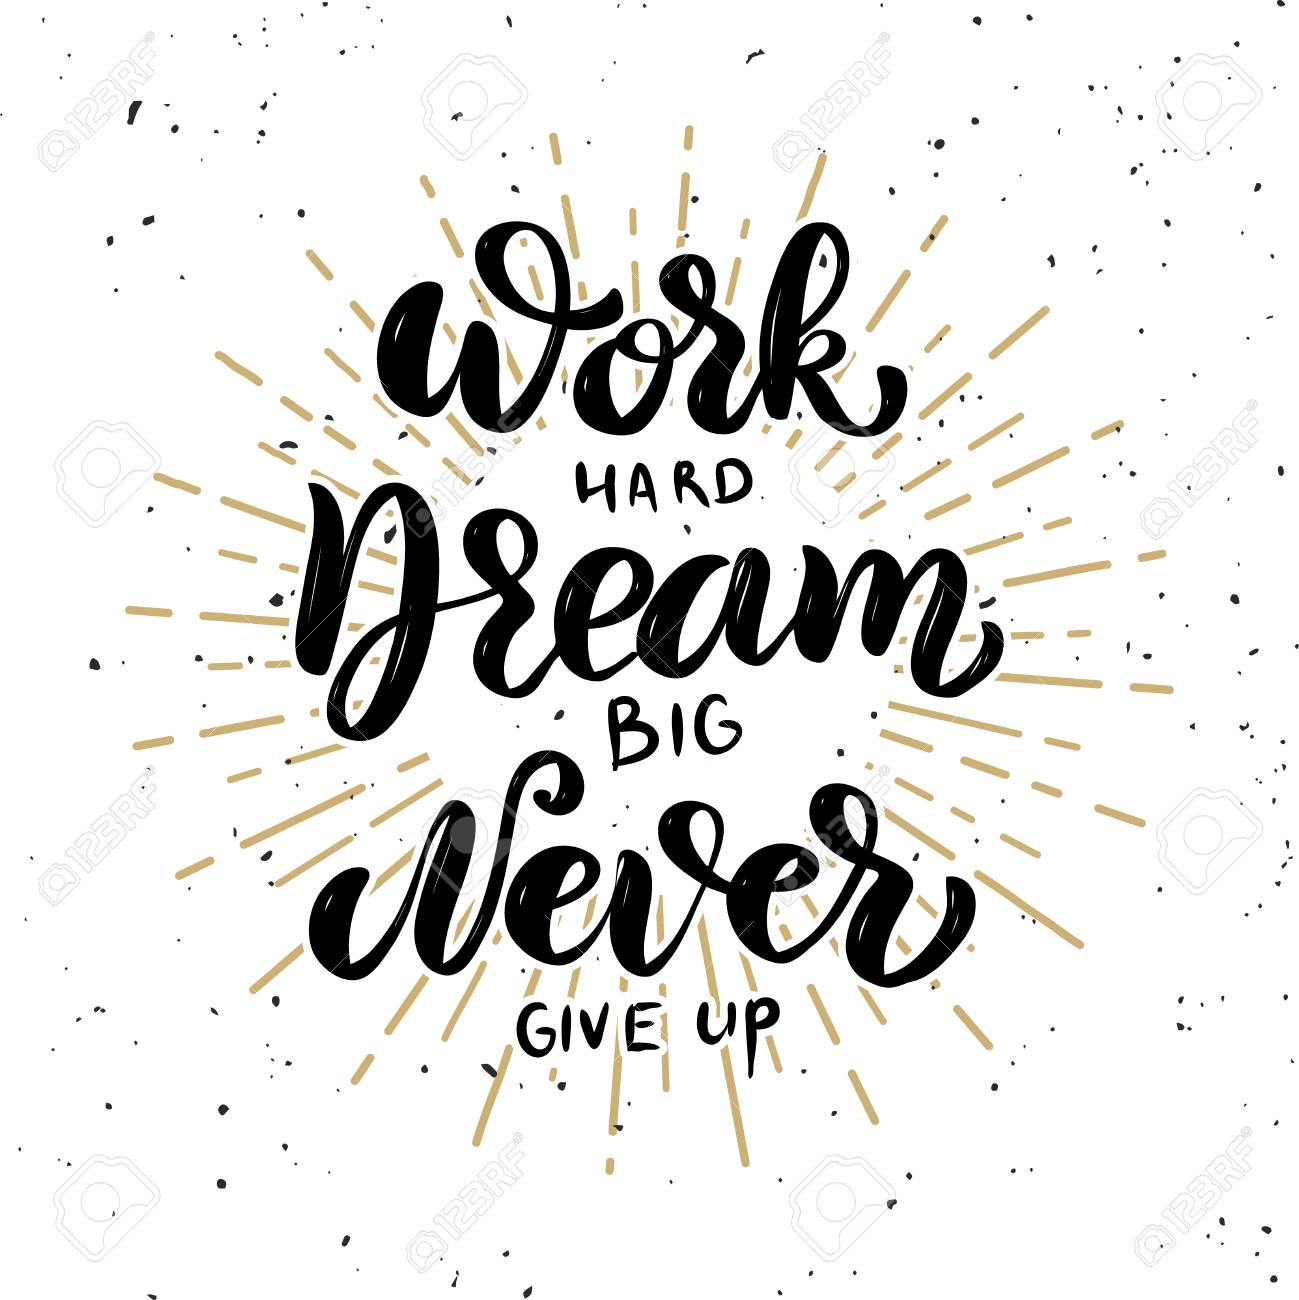 Work hard, dream big, never give up. Hand drawn motivation lettering quote. Design element for poster, banner, greeting card. Vector illustration - 91338608